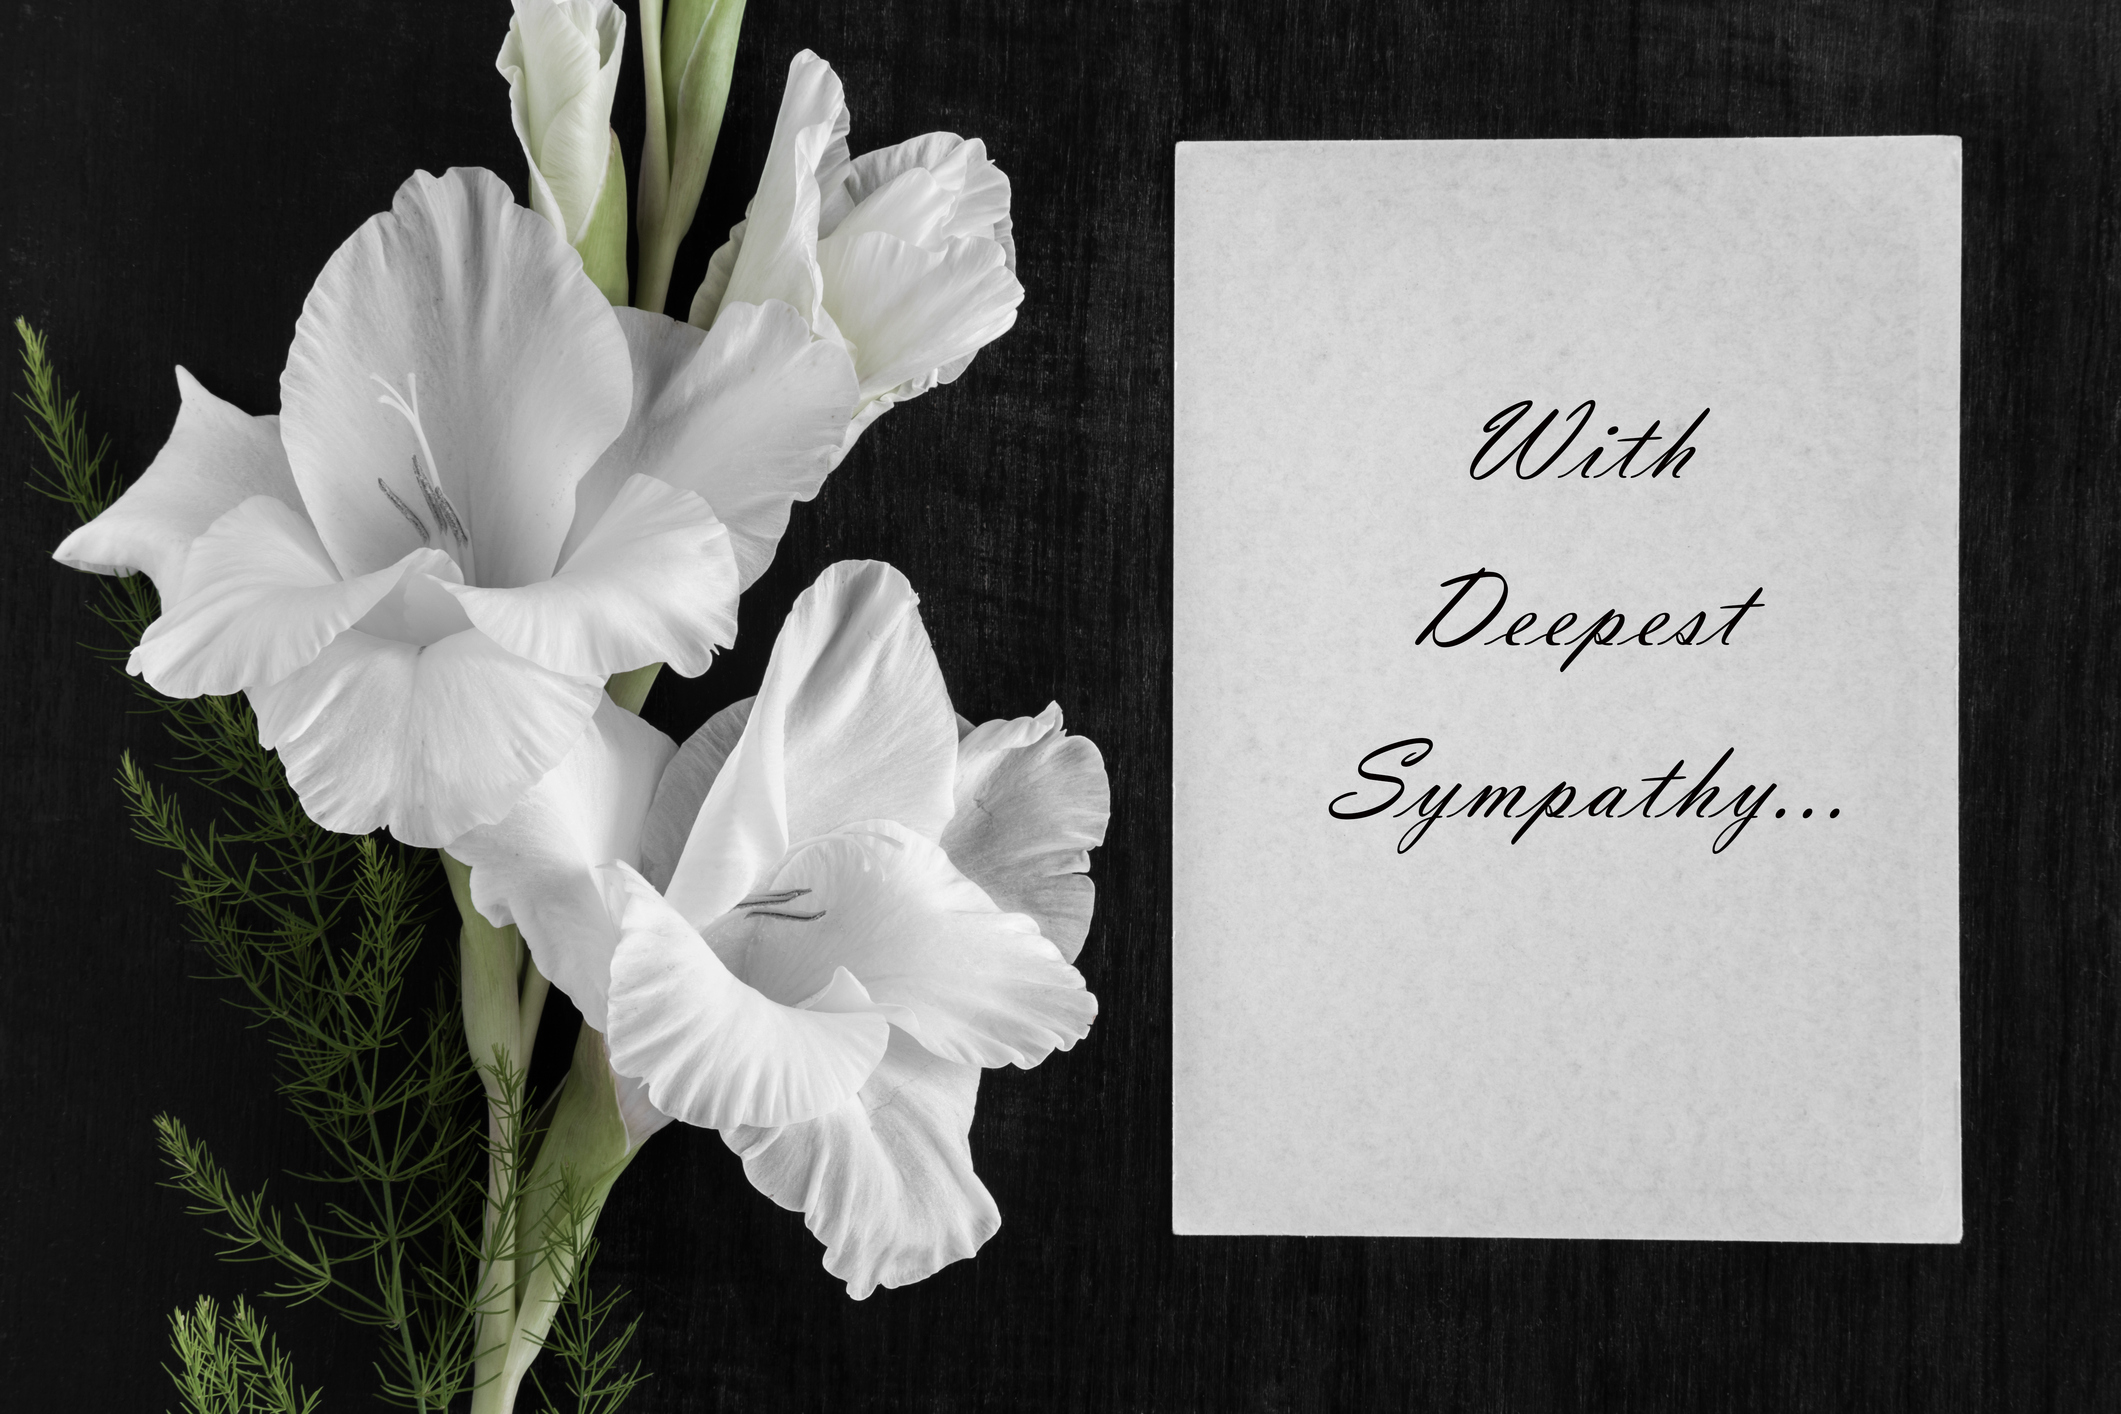 Sympathy messages for funeral flowers lovetoknow izmirmasajfo Image collections